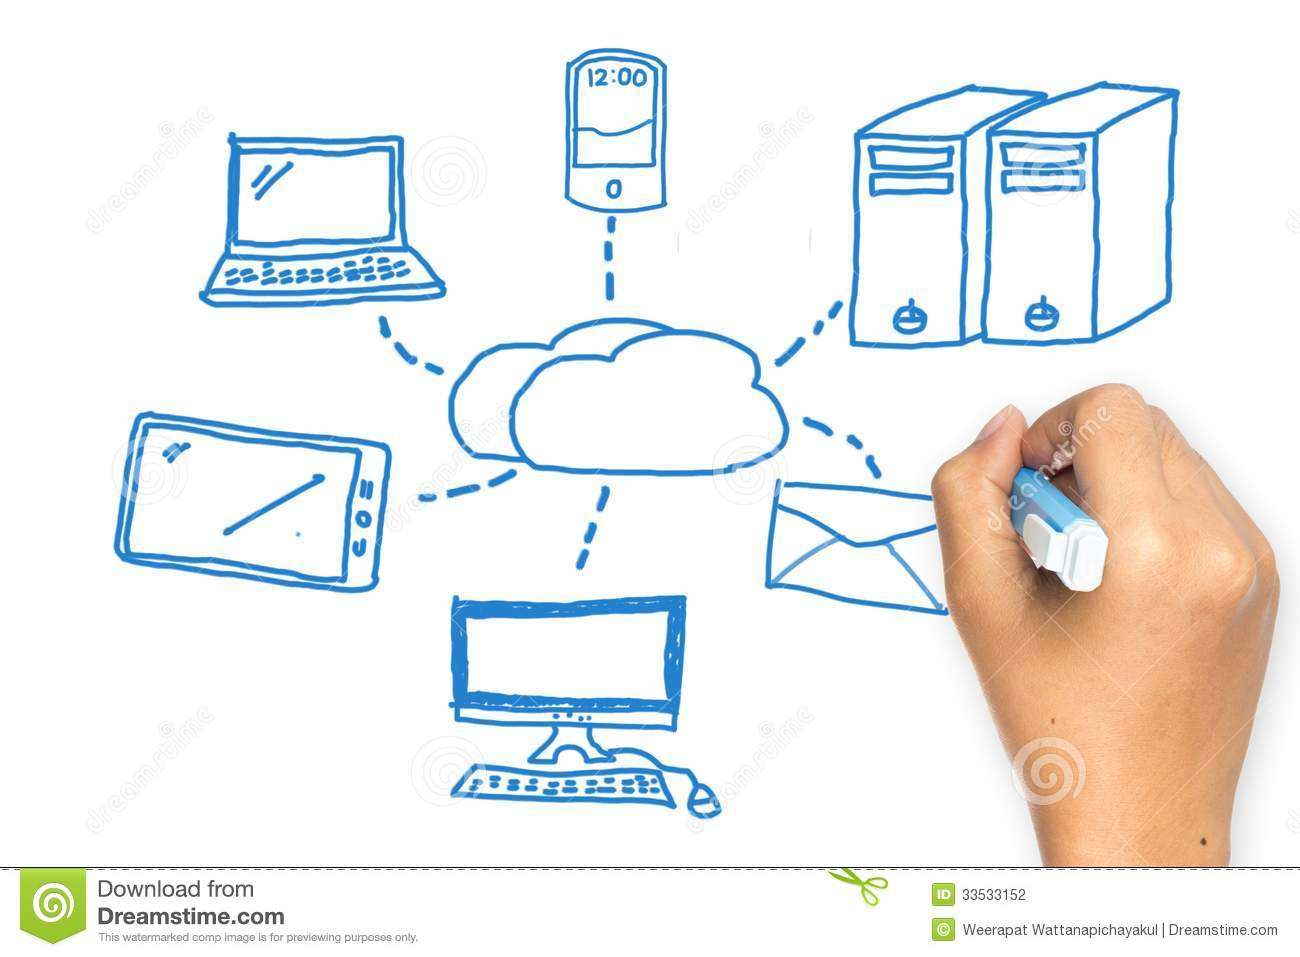 cloud-com-hand-drawing-diagram-whiteboard-33533152  L Wiring Diagram Free Download Schematic on free download cross section, free schematic diagram h6677 citizen, free schematic diagram hitachi 55hdt79, free electronic circuit diagram, free electrical schematics, free hallicrafters sx 122 schematics diagrams,